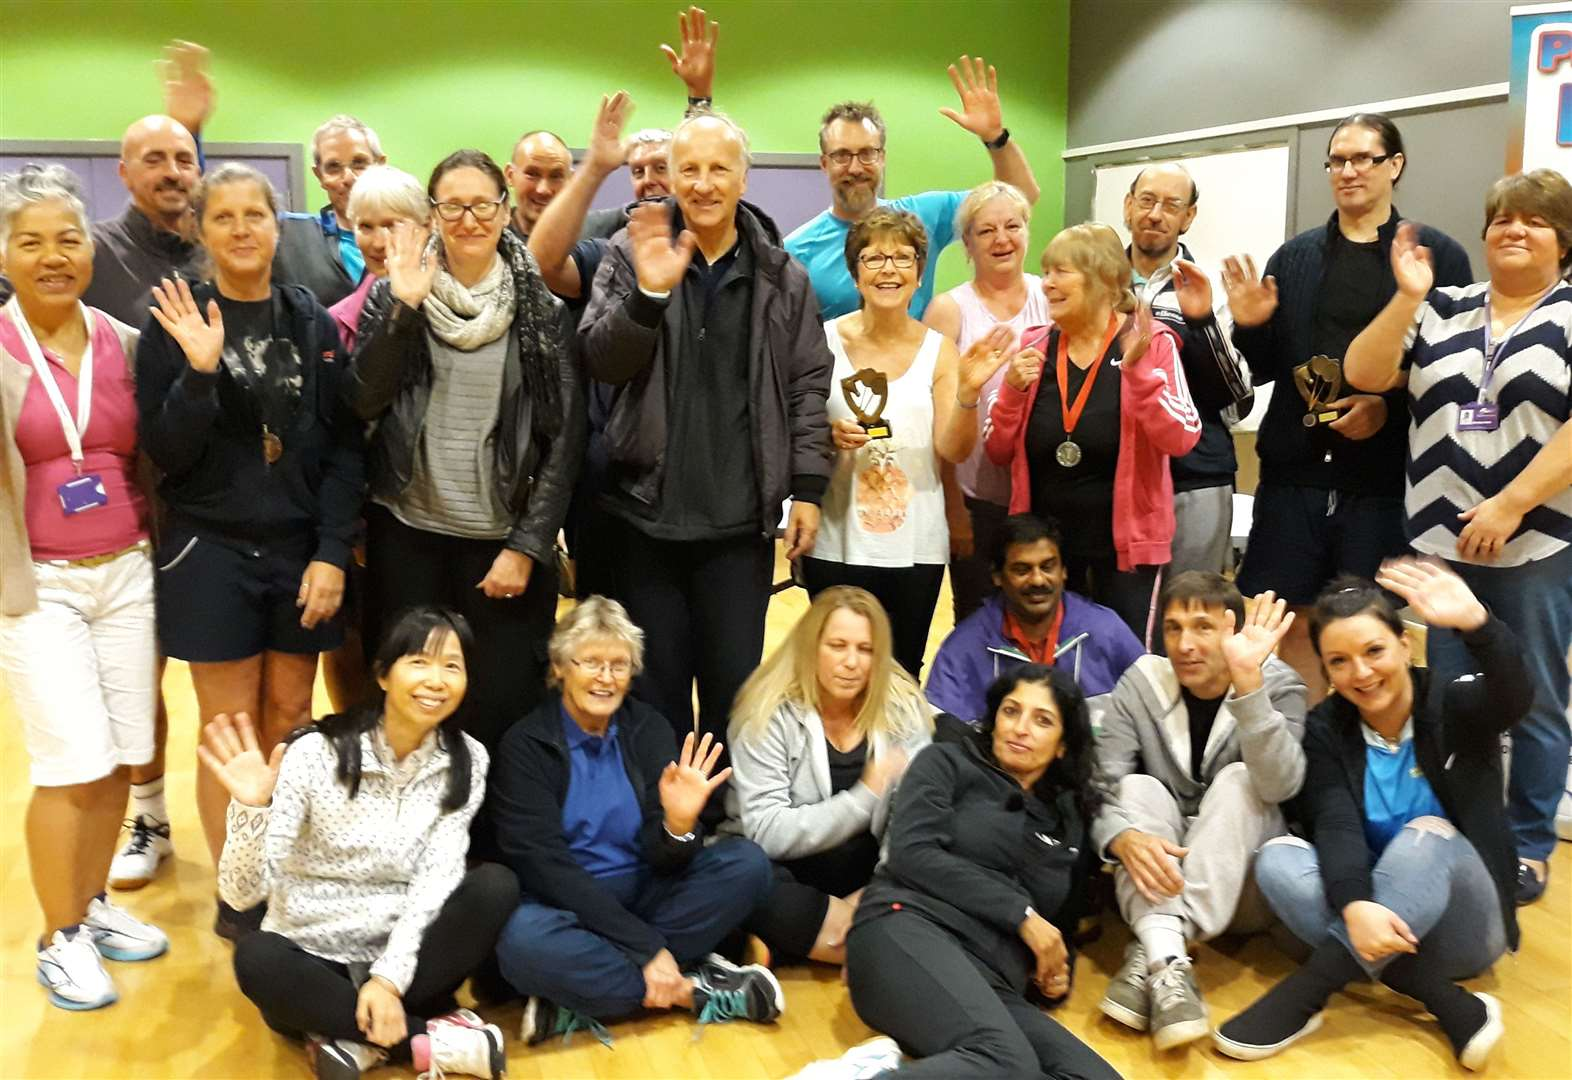 Everyone is welcome: communities brought together through badminton in Wisbech